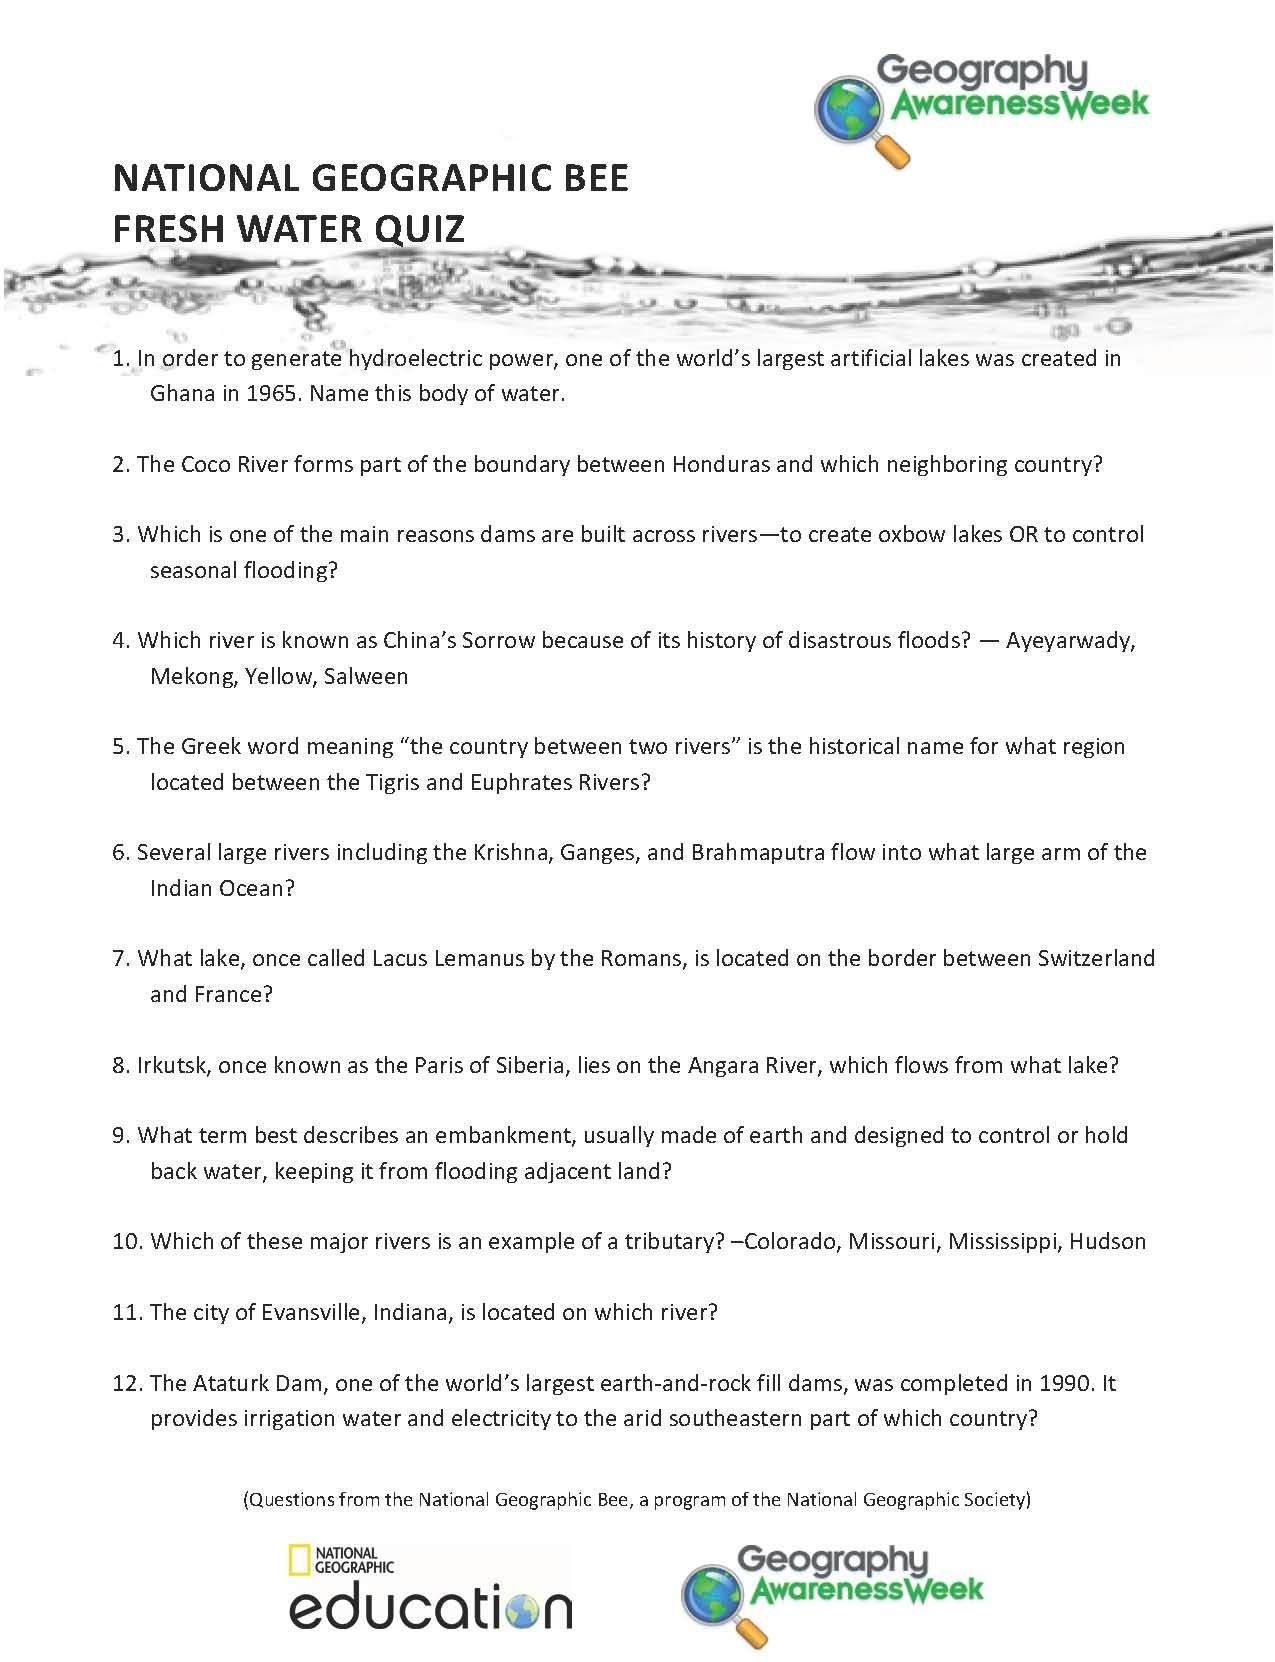 Freshwater Quiz Questions | National Geographic Society